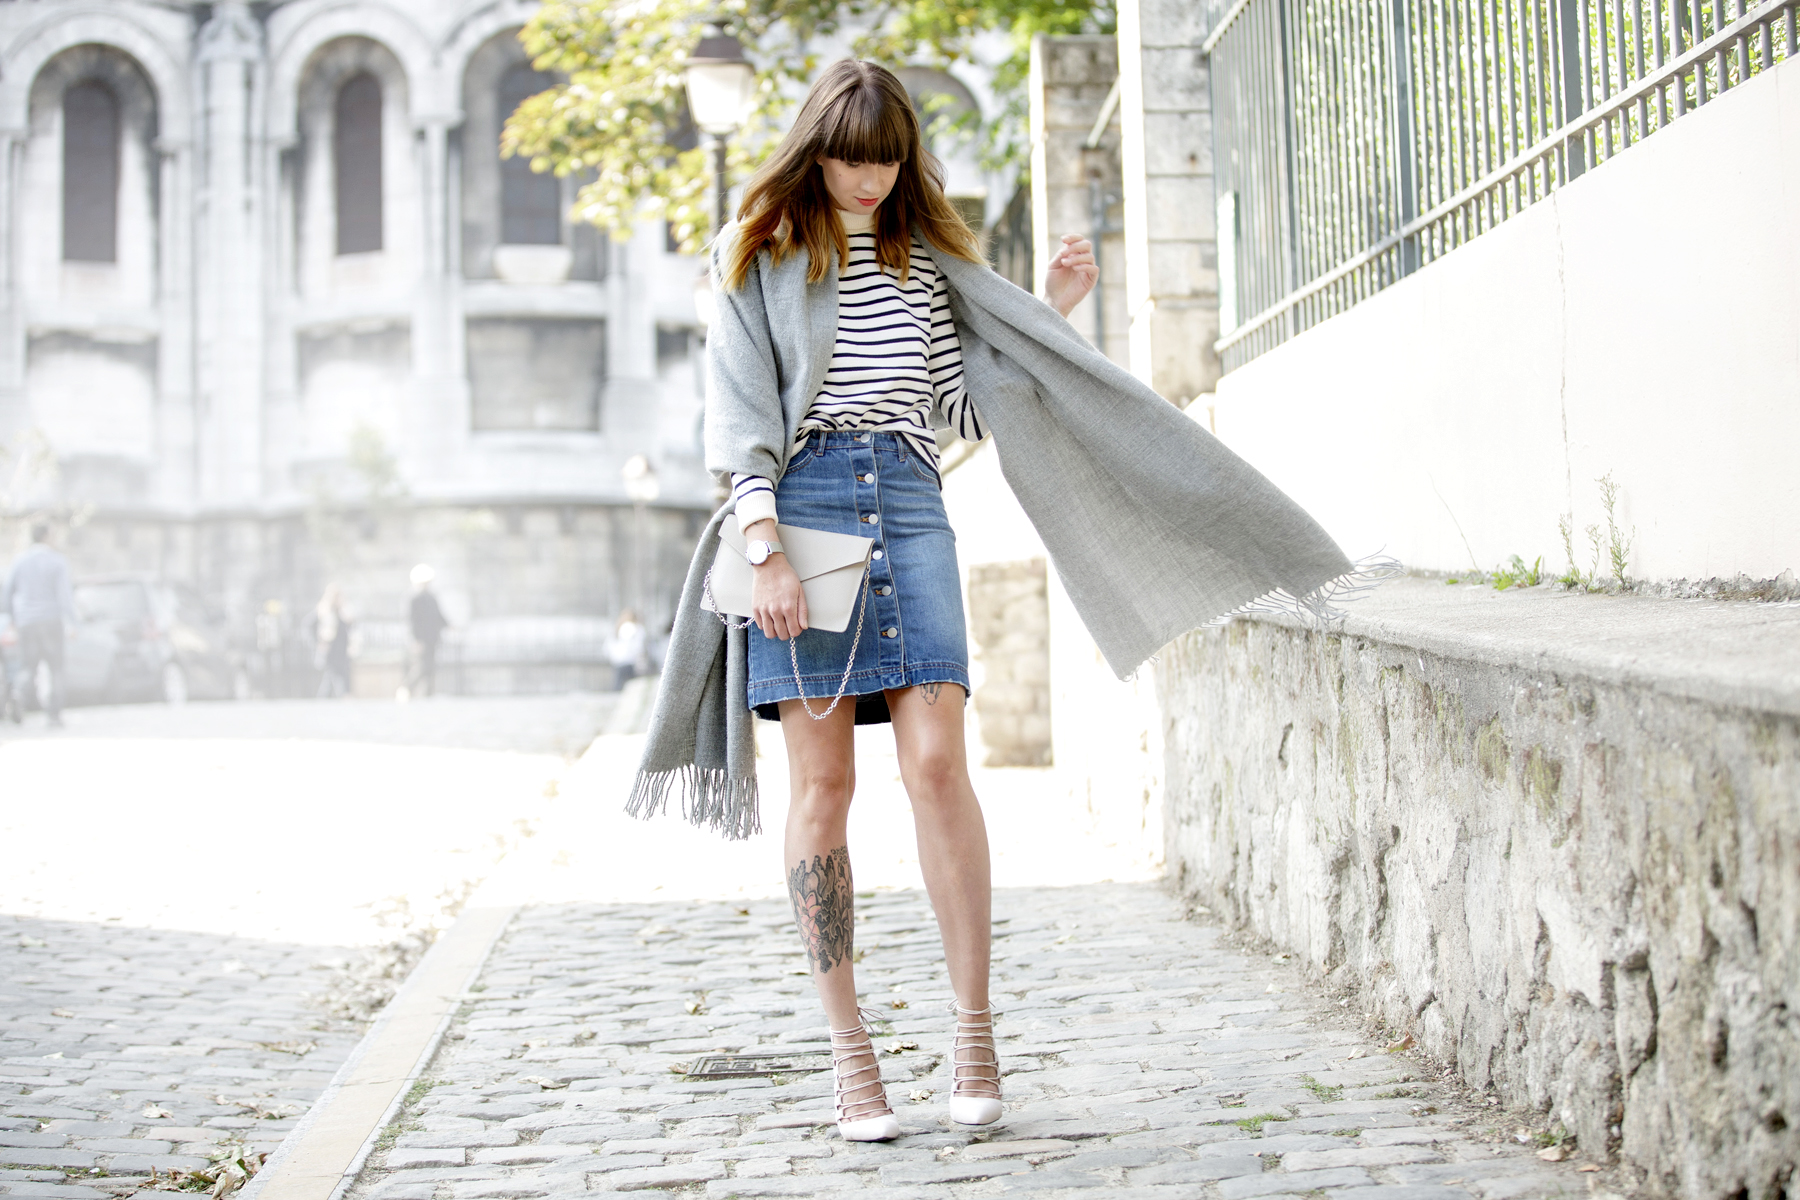 outfit ootd denim skirt grey scarf acne aquazzura high heels strappy montmartre sacre coeur paris streetstyle fashionblogger ricarda schernus cats & dogs blog pfw 5